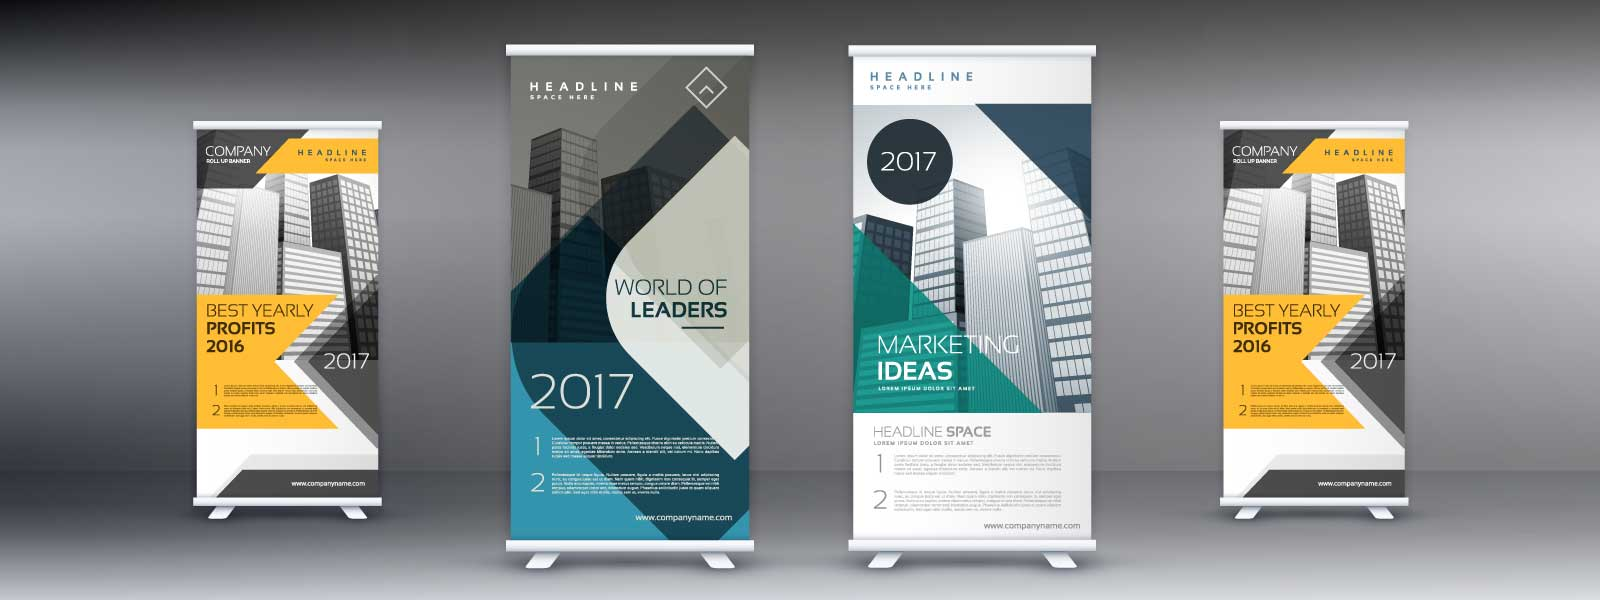 Banner Printing Cape Town